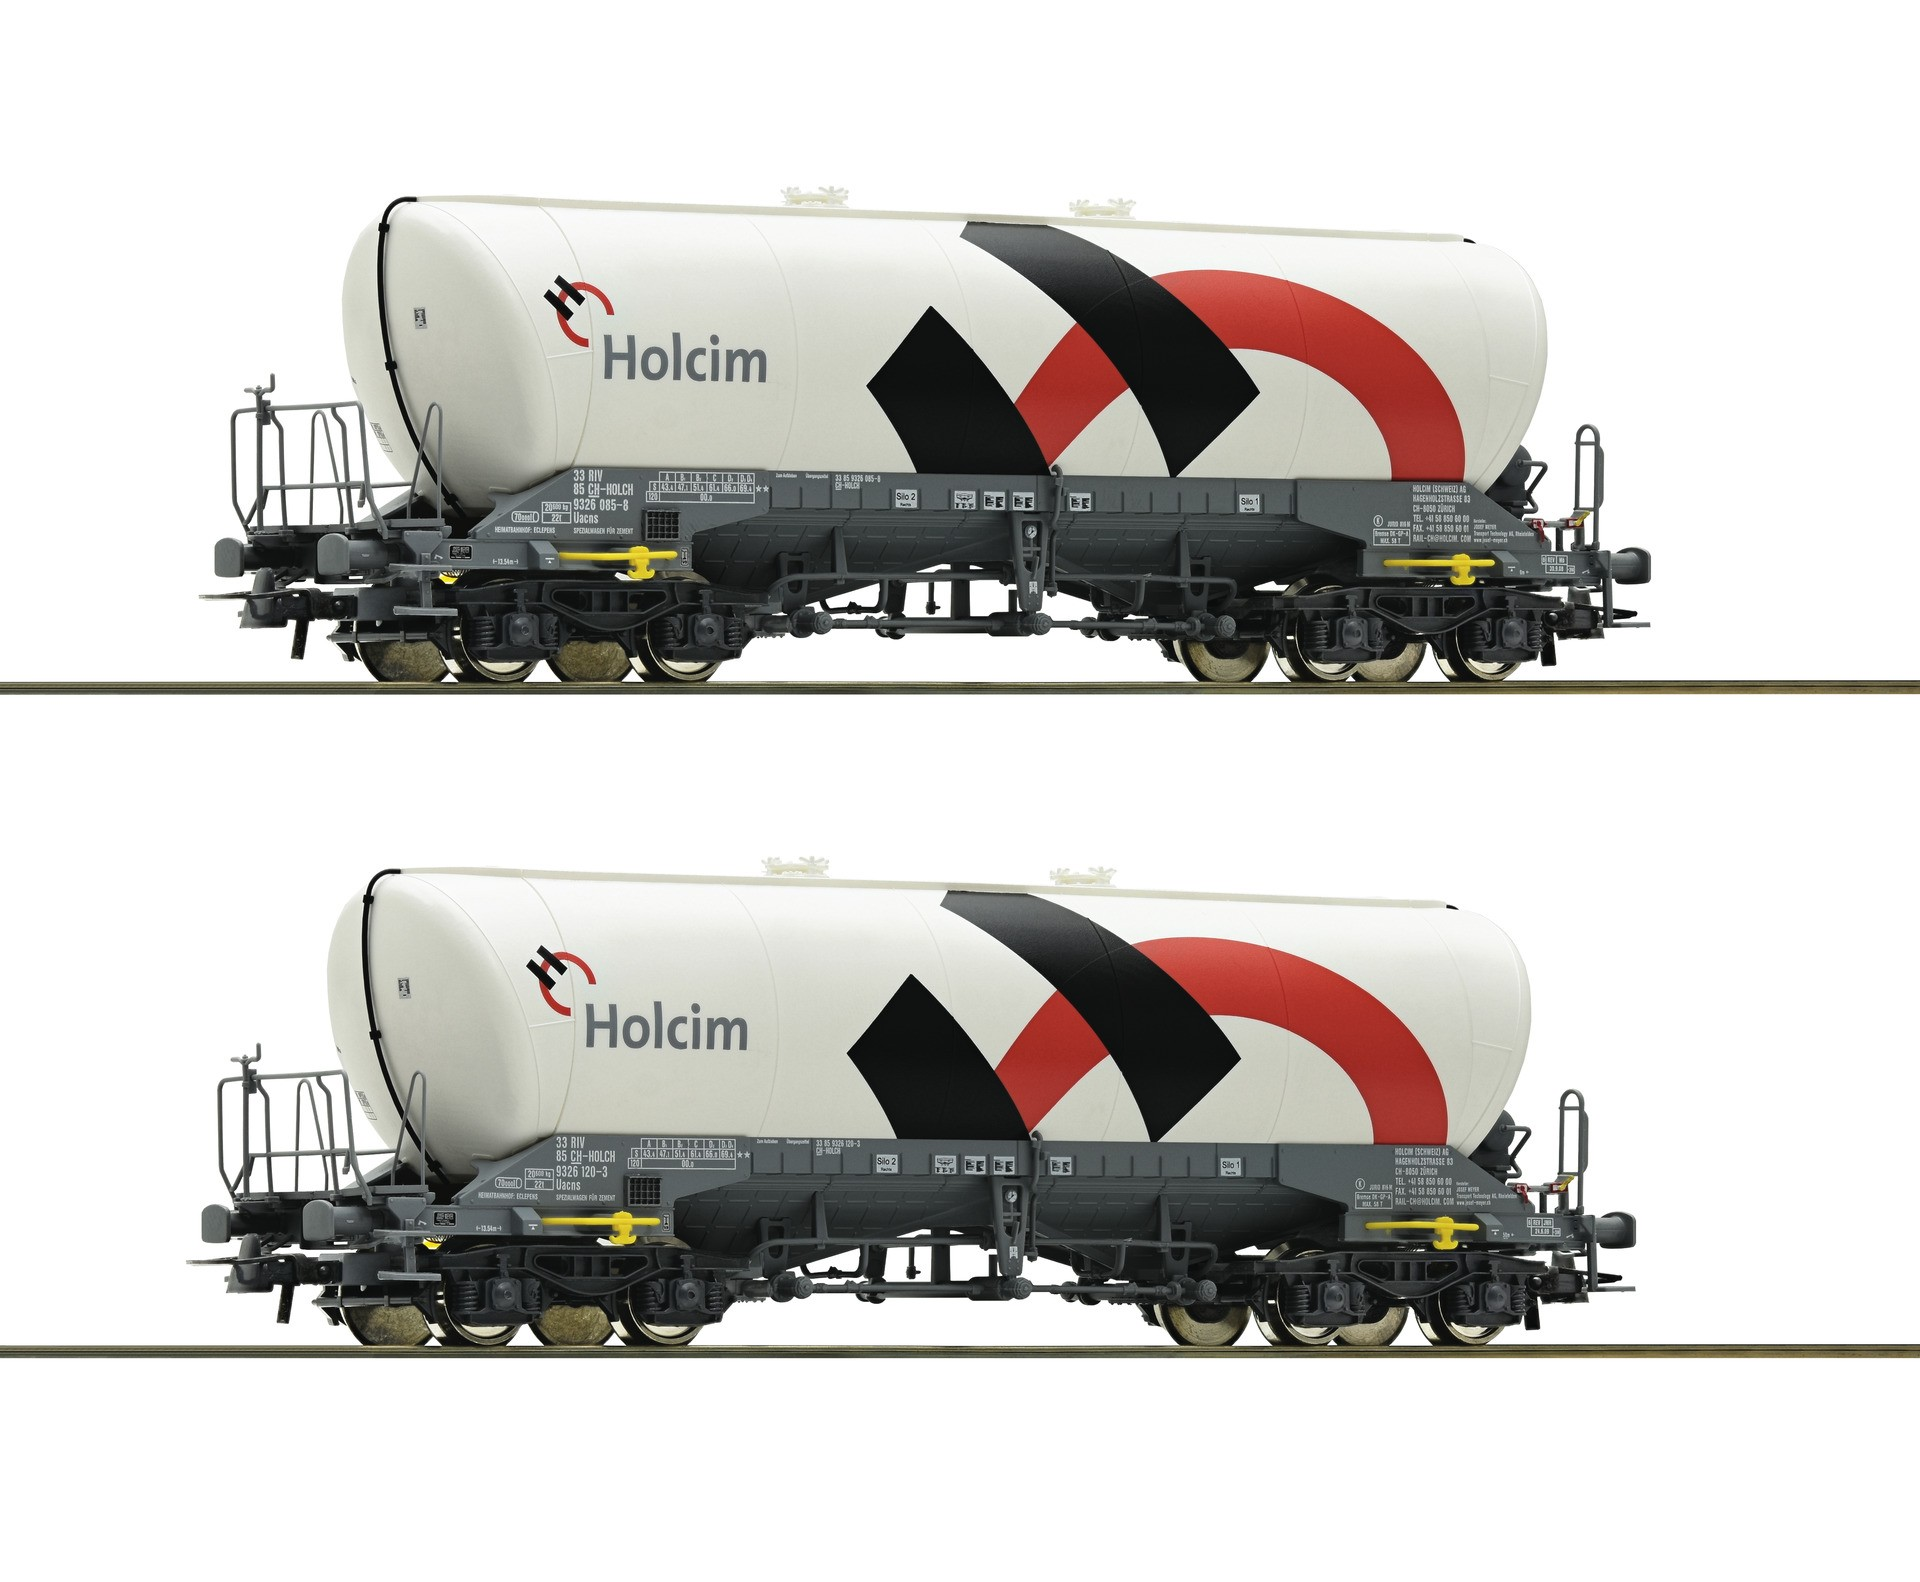 Roco 76145 Holcim wagon Silo 2 piece set